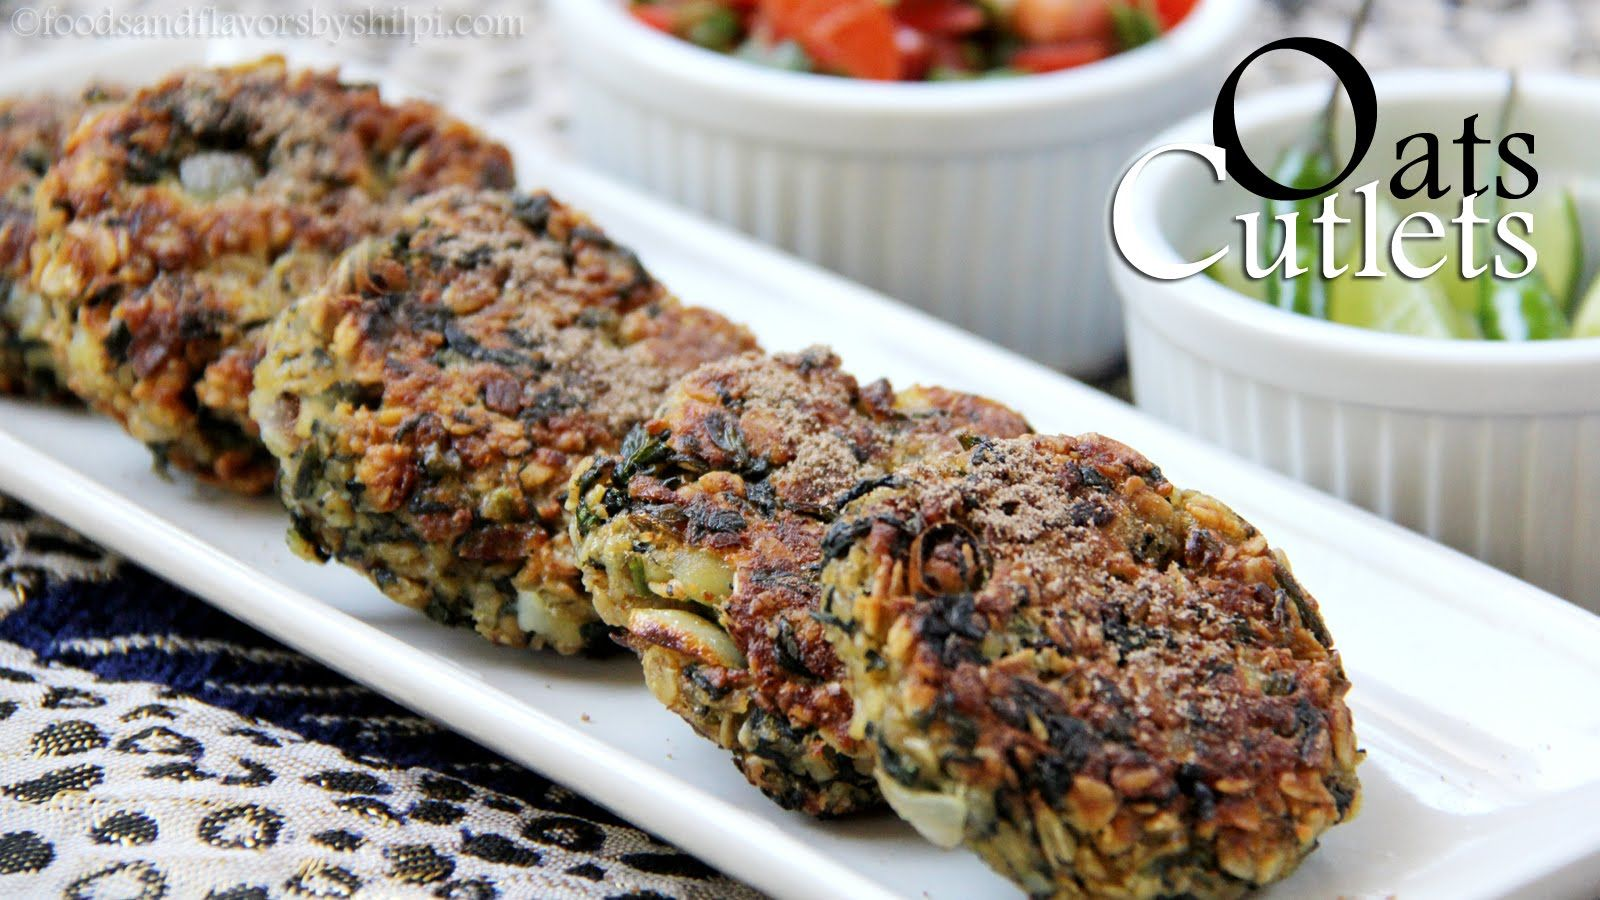 Pin By Shilpi Agarwal On Foods And Flavors By Shilpi Vegetarian Snacks Snack Recipes Cutlets